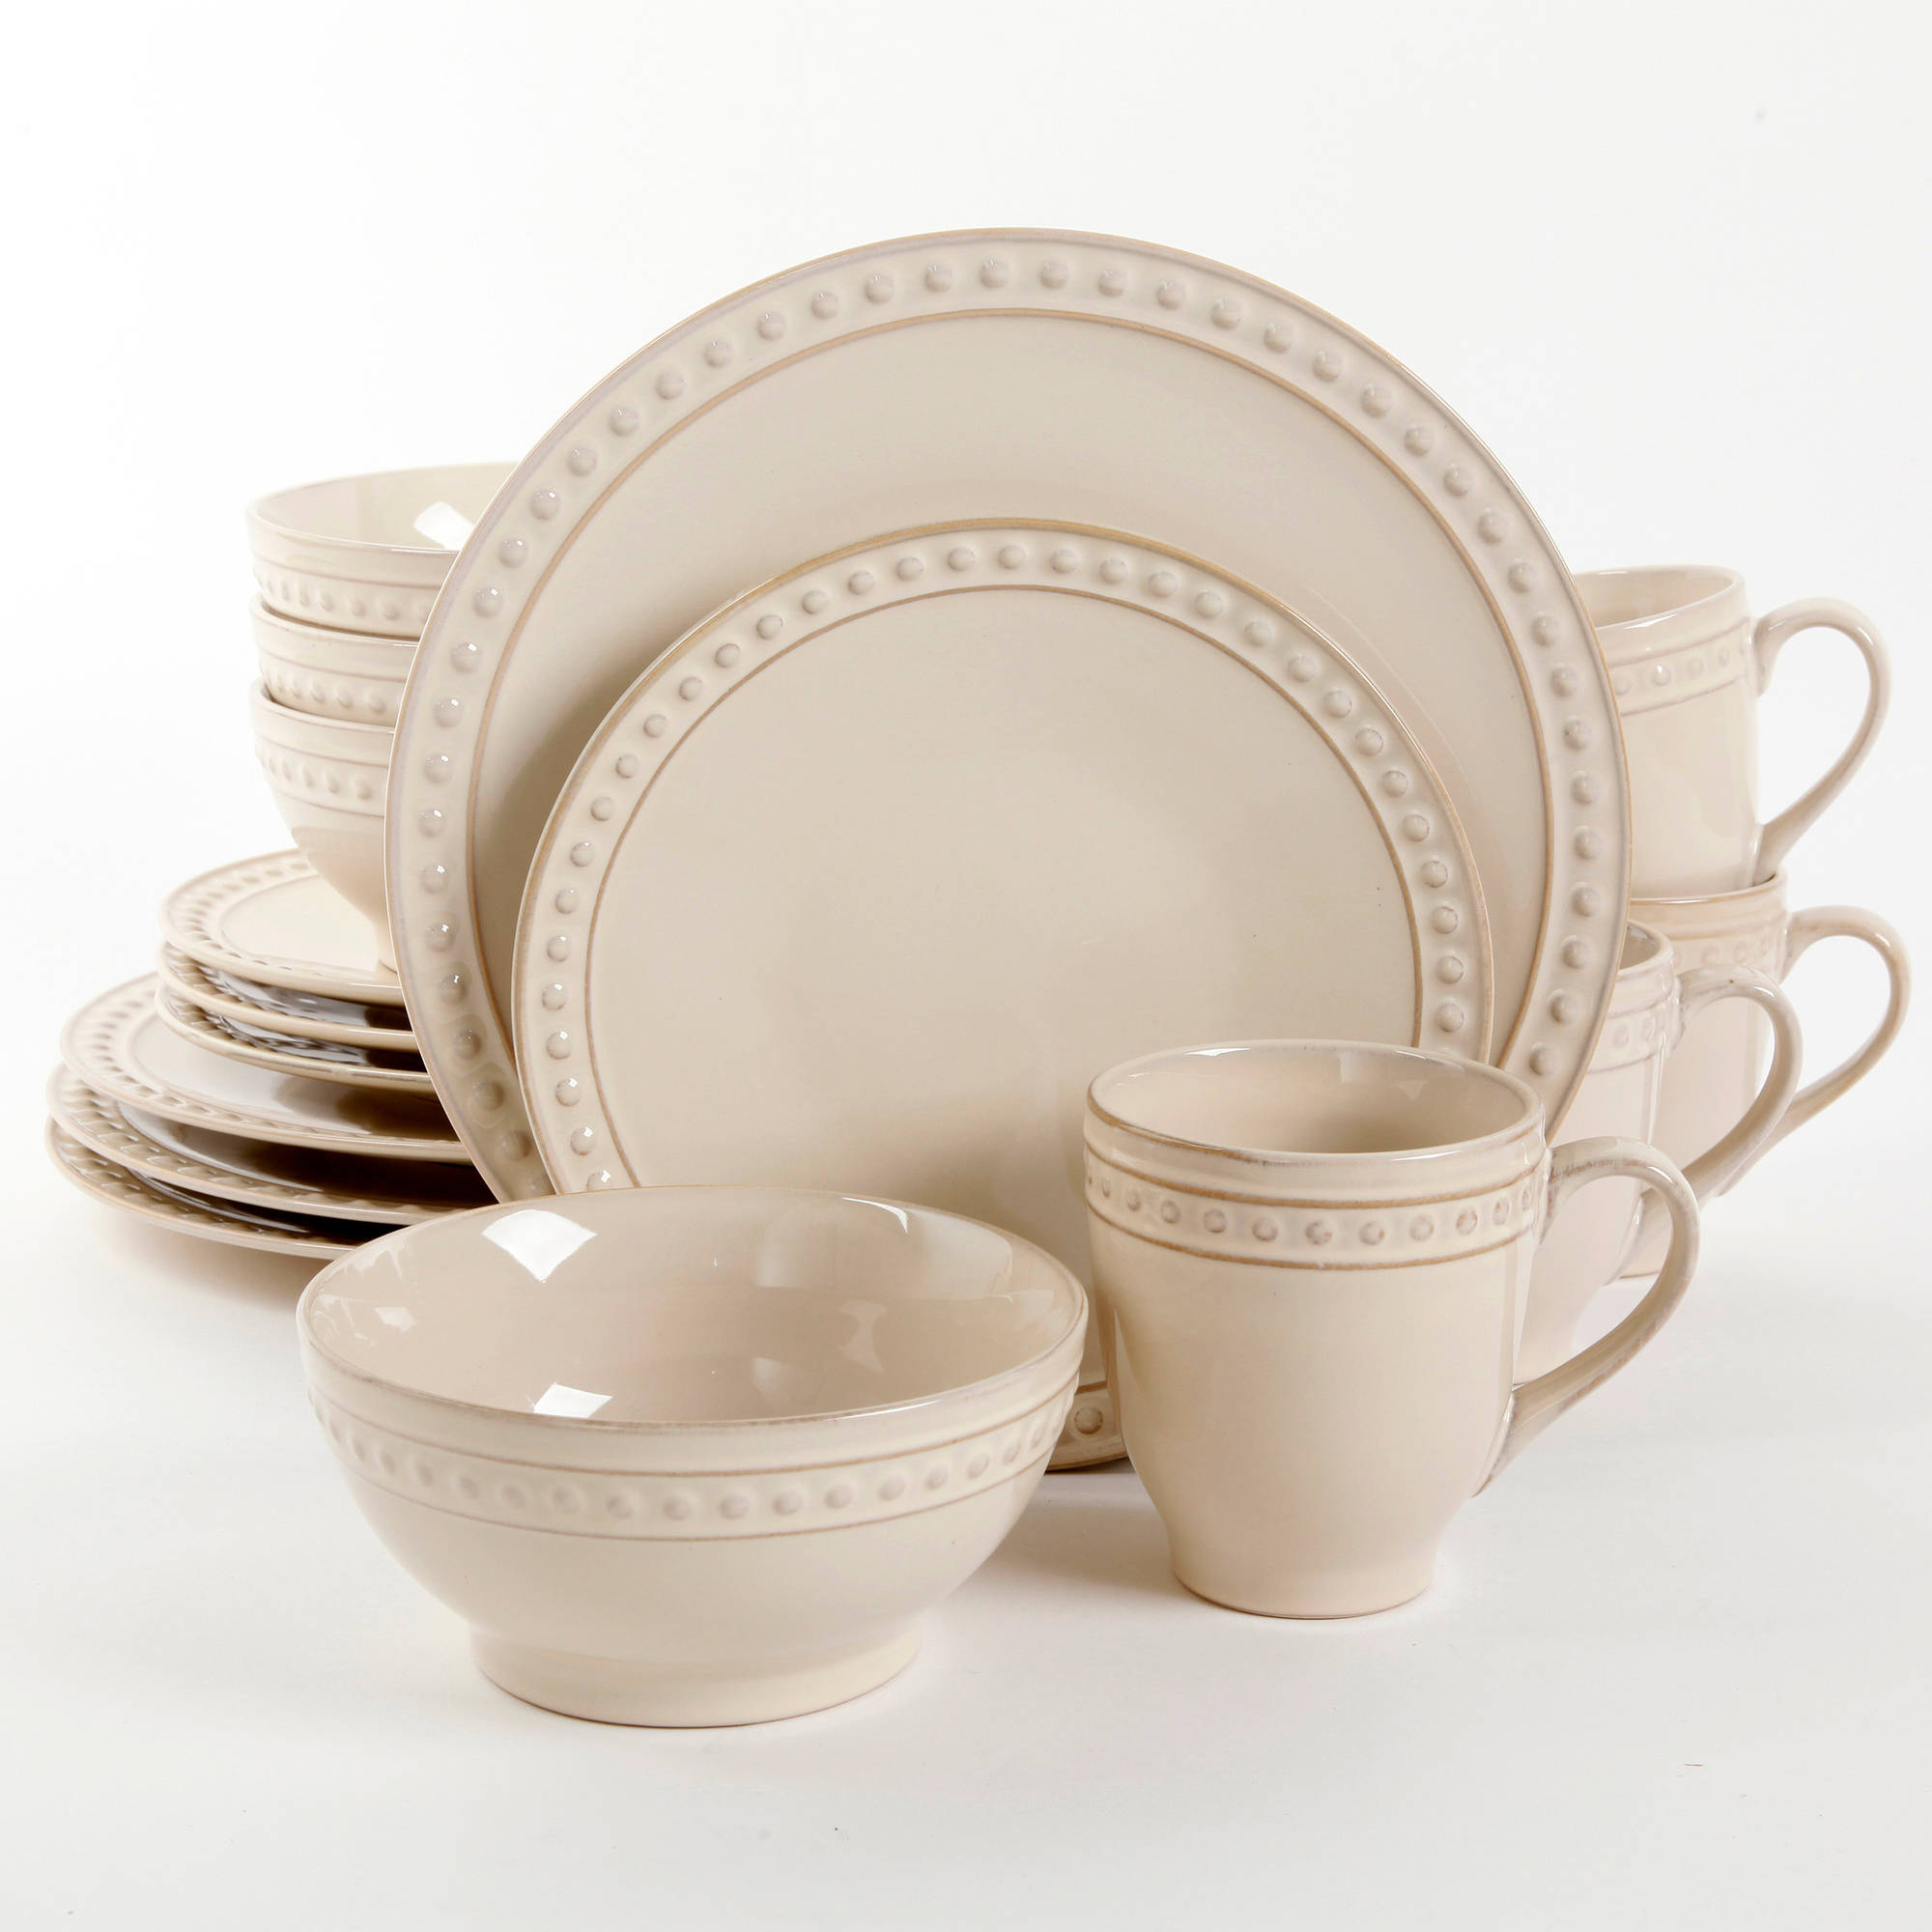 & Better Homes and Gardens Amity 16-Piece Dinnerware Set - Walmart.com